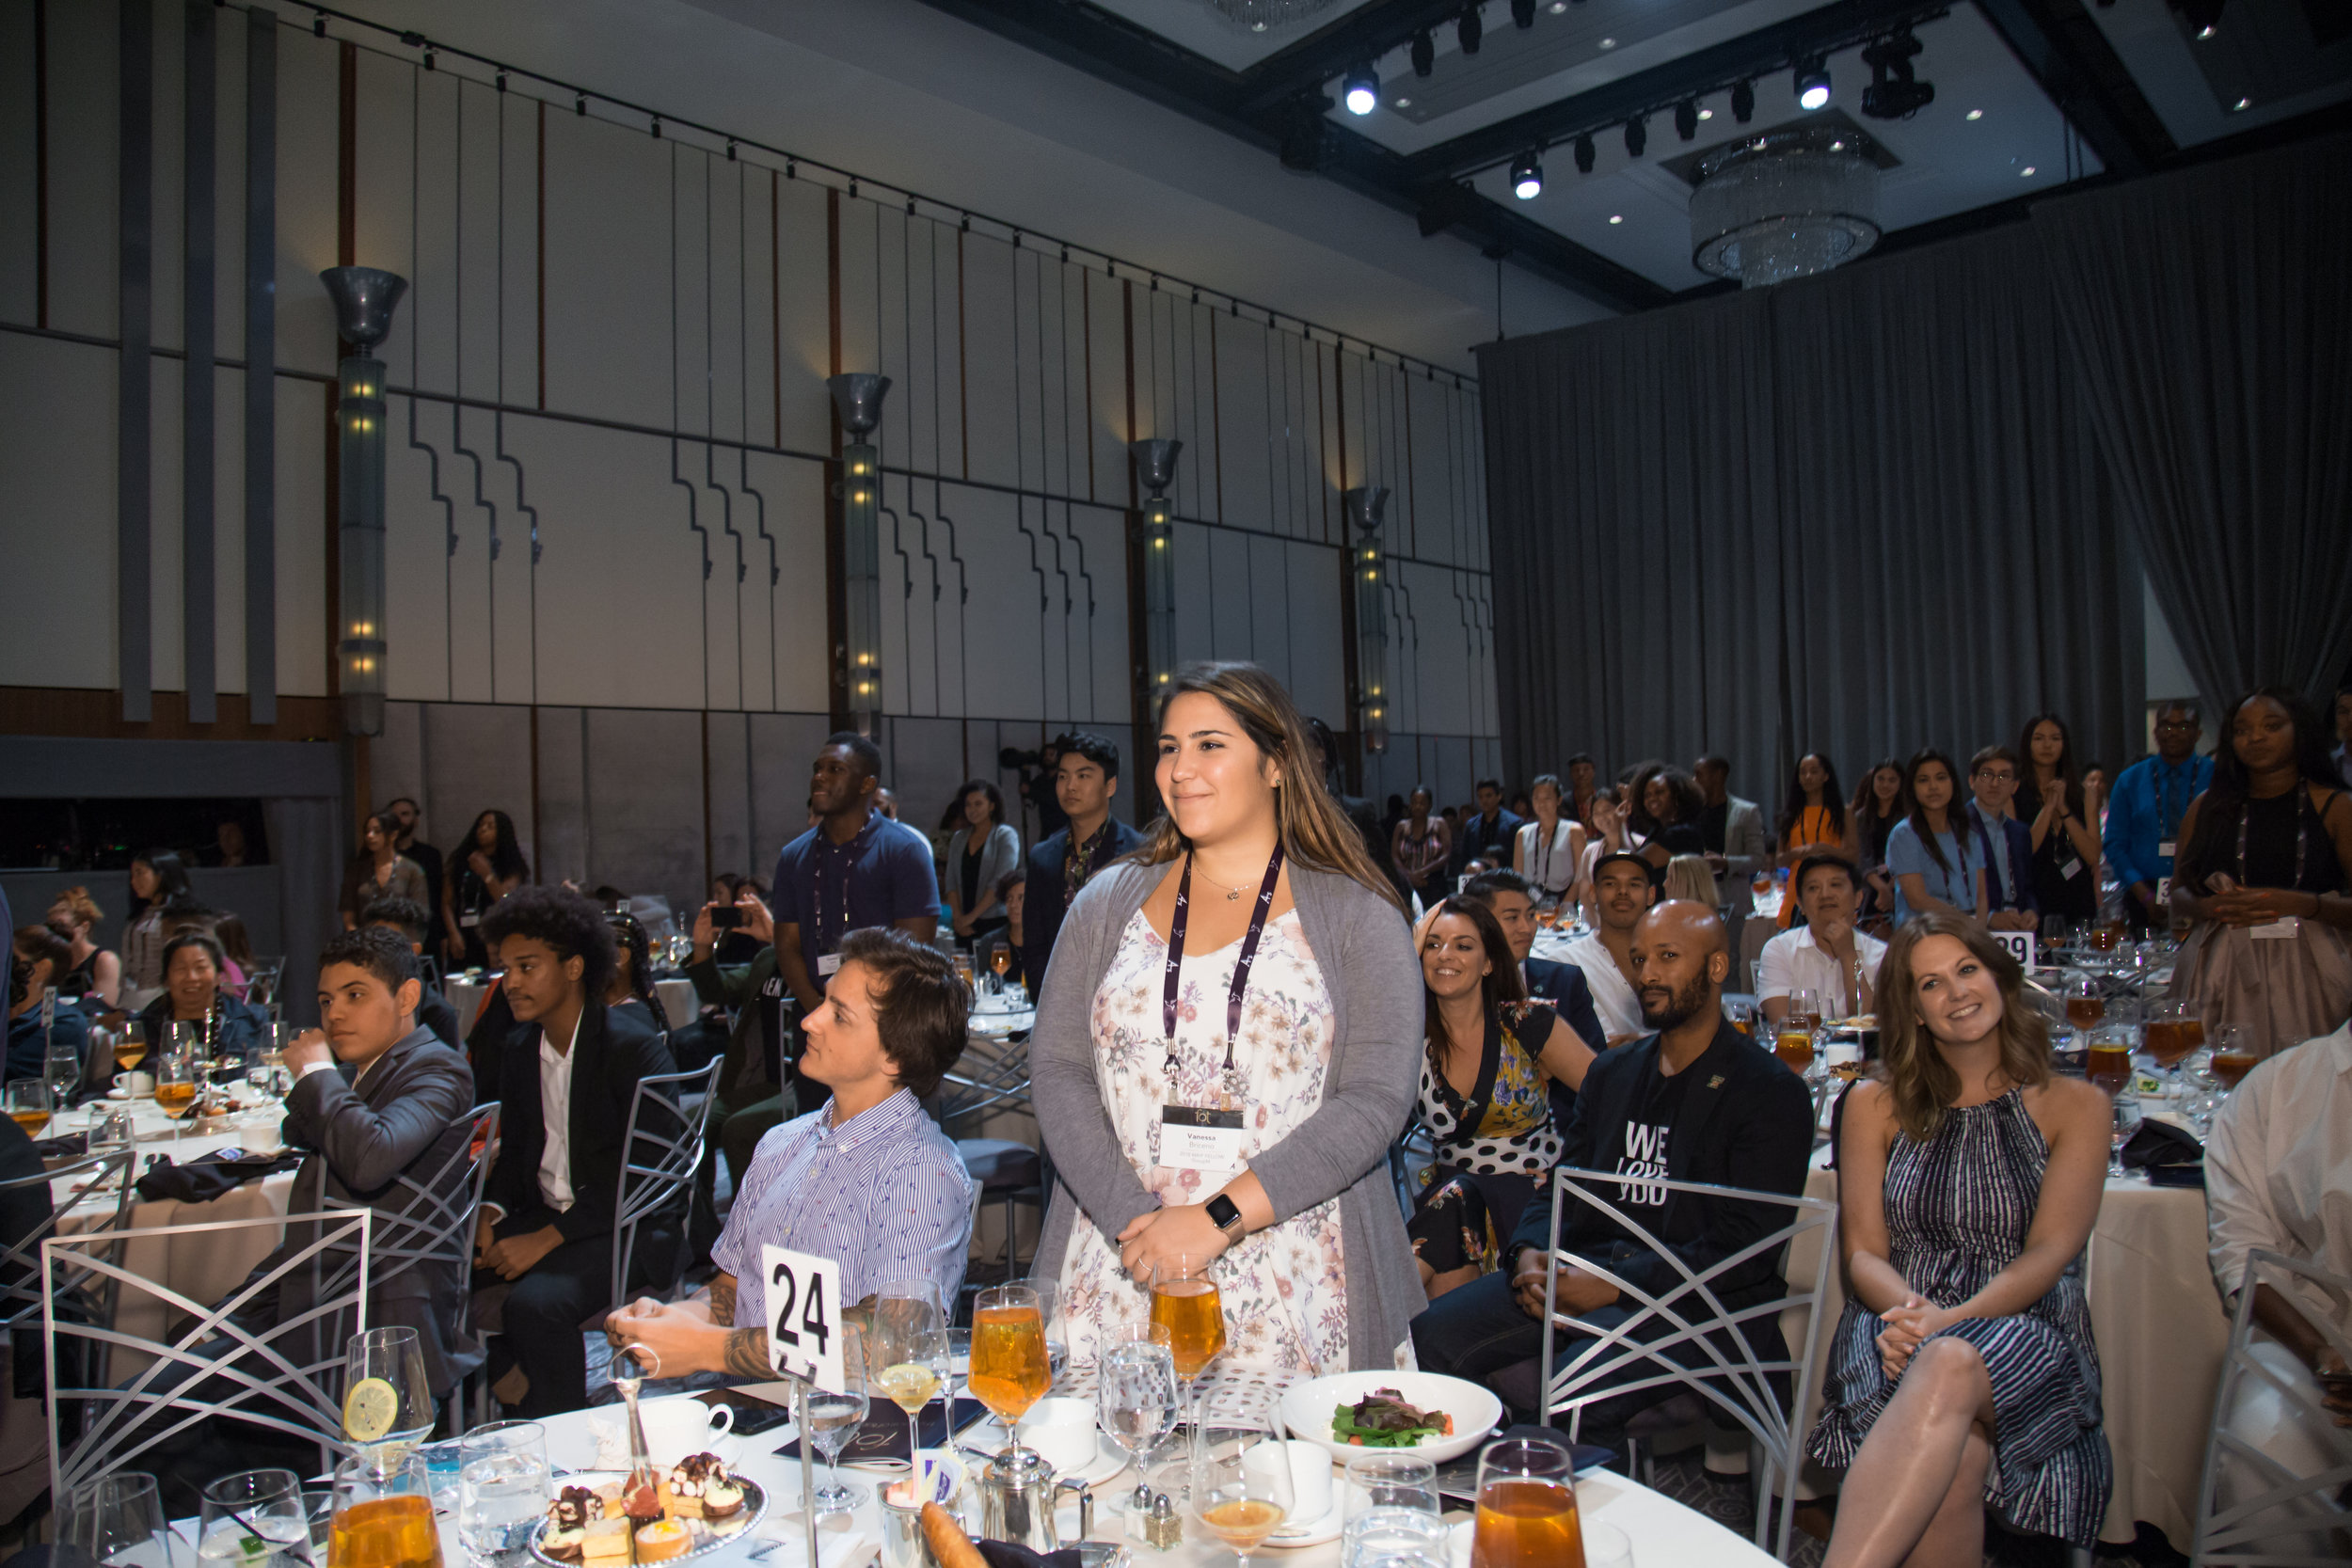 4As_MAIP_FOT_Luncheon_2018_Margarita_Corporan-173.jpg